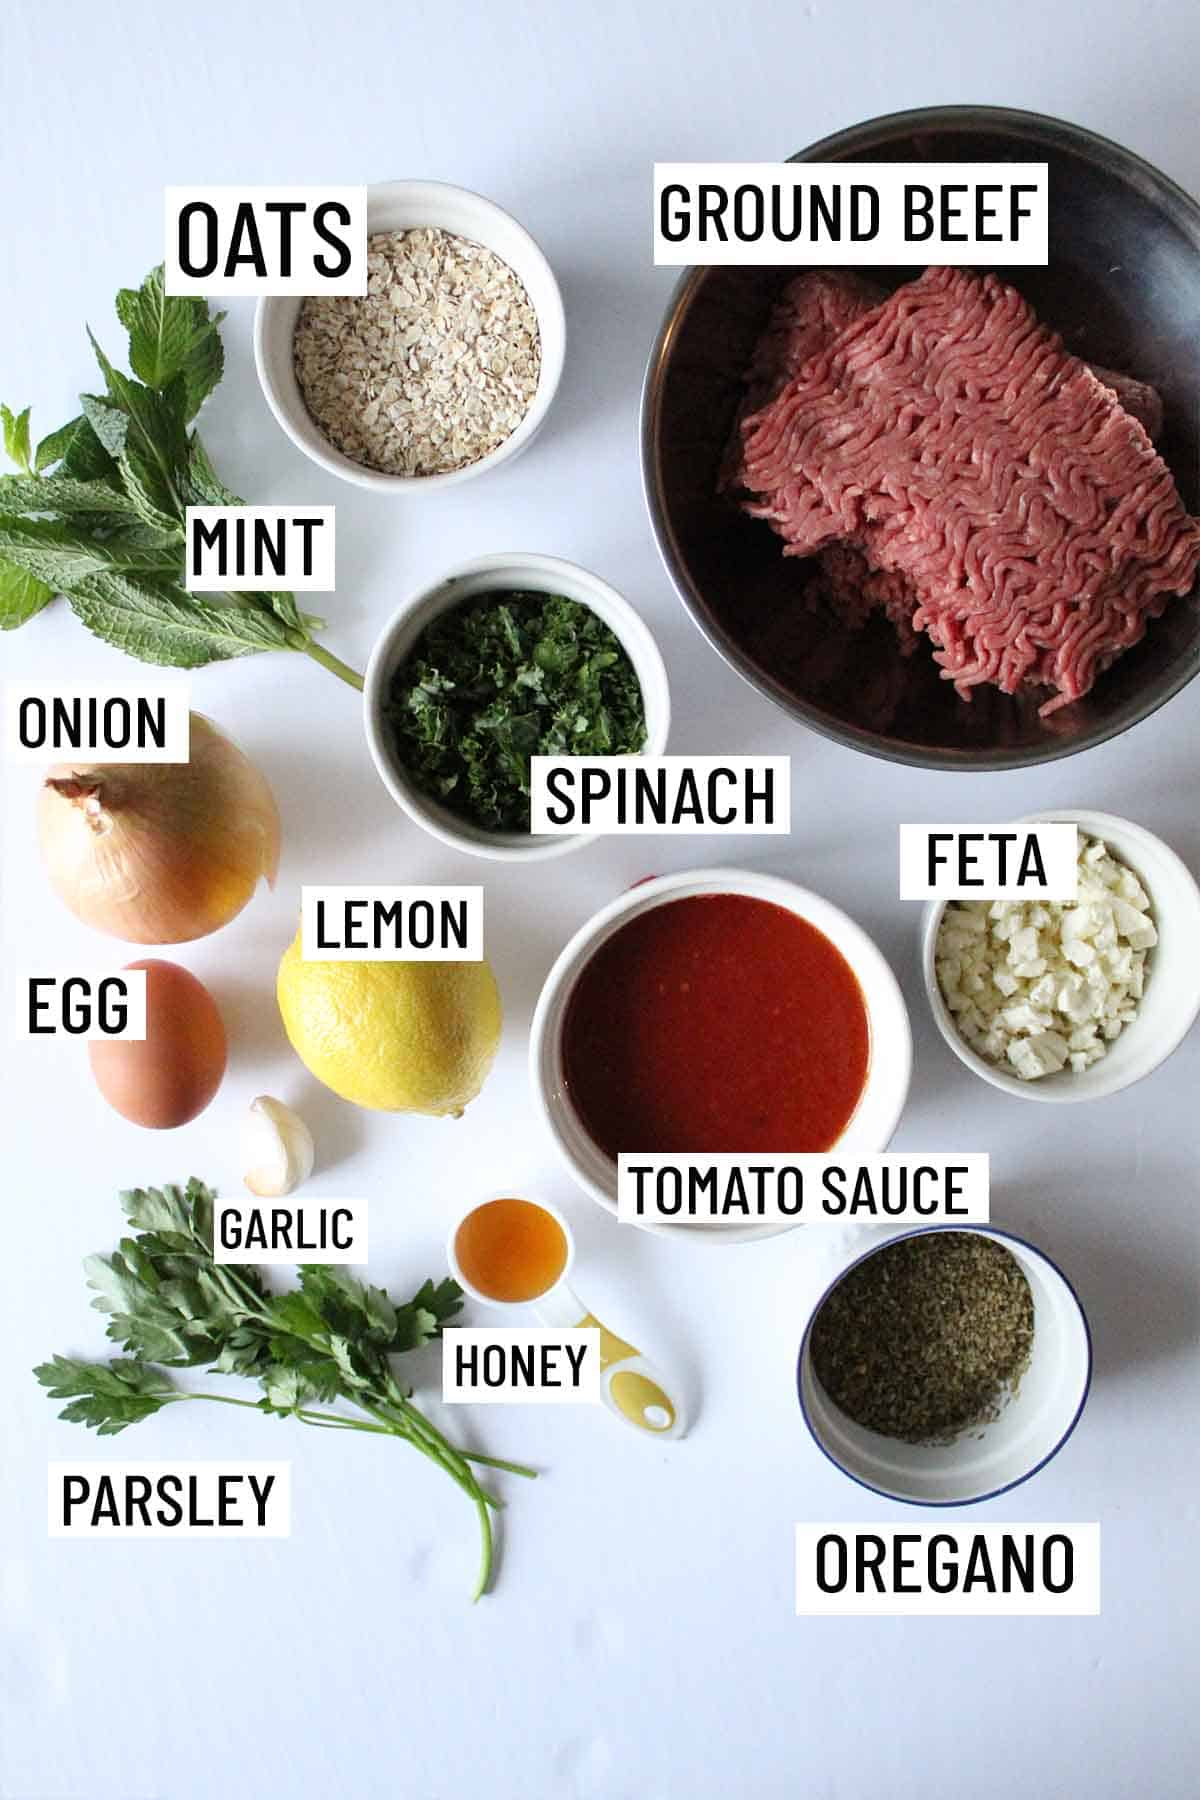 Birds eye view of portioned recipe ingredients for meatloaf muffins including ground beef, lemon, onion, garlic, egg, oregano, mint, parsley, oats, honey, feta, spinach and tomato sauce.